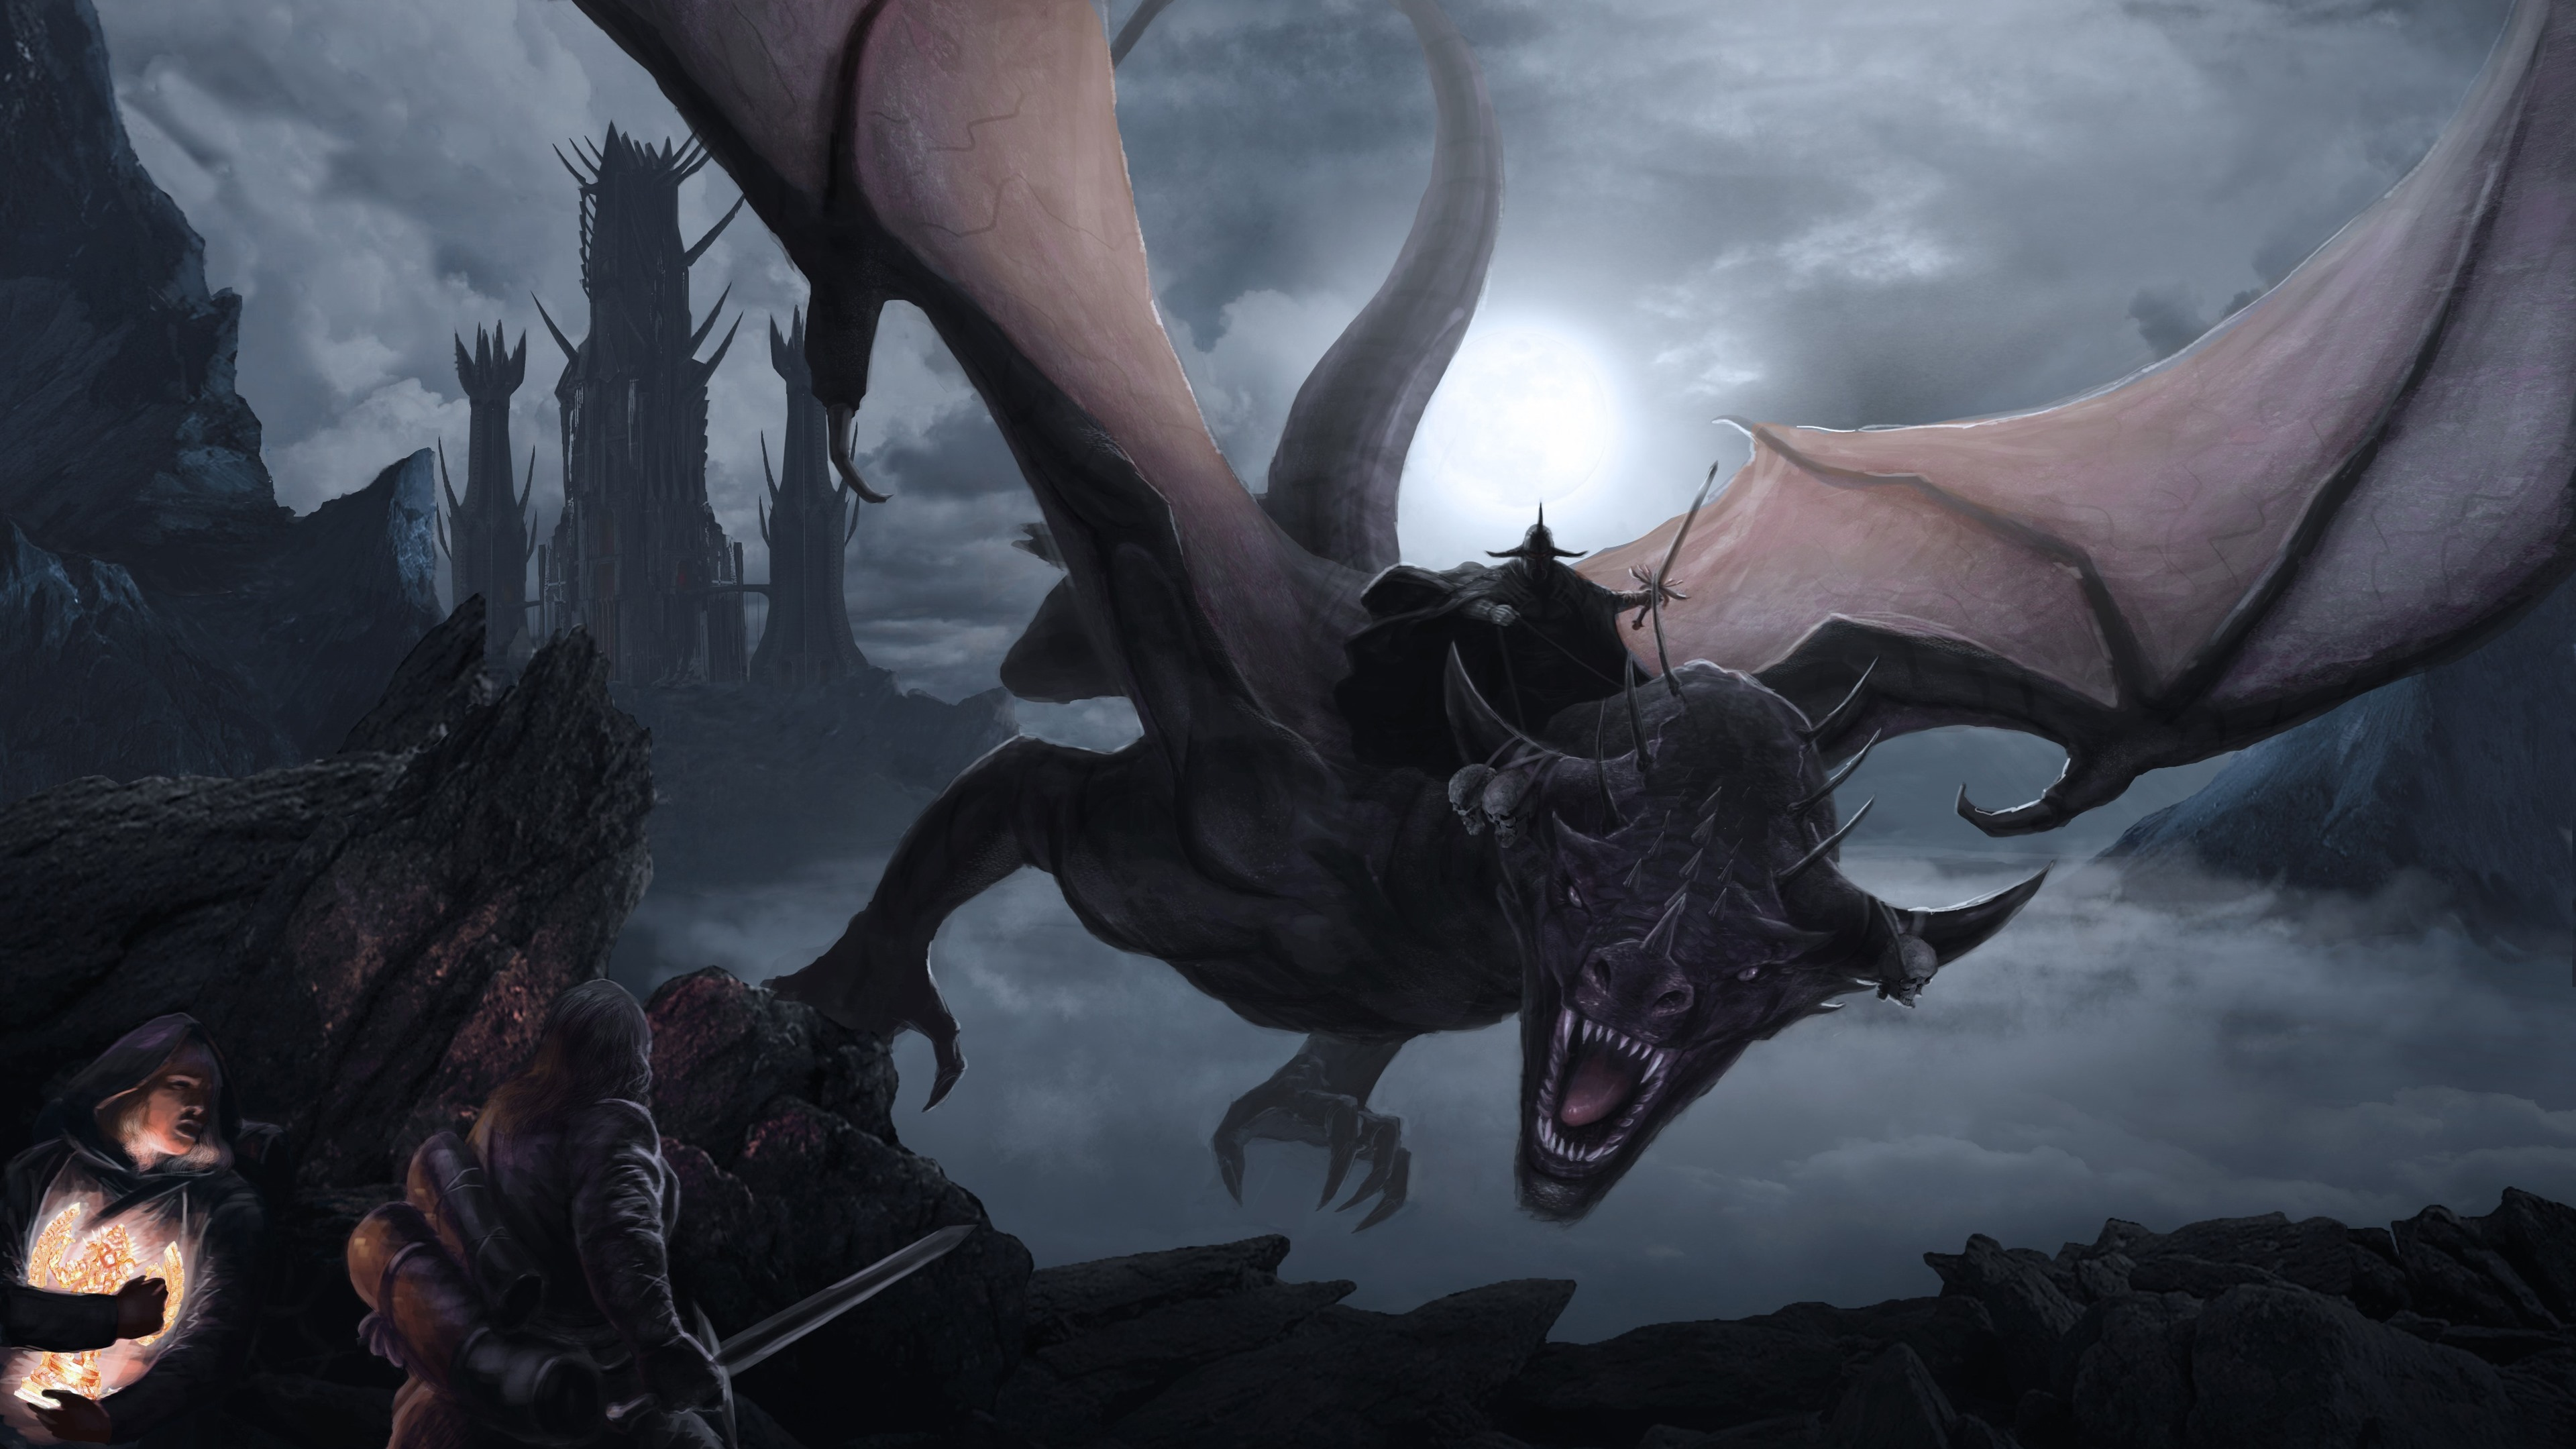 Wallpaper Lord Of The Rings Dragon Flight Art Picture 3840x2160